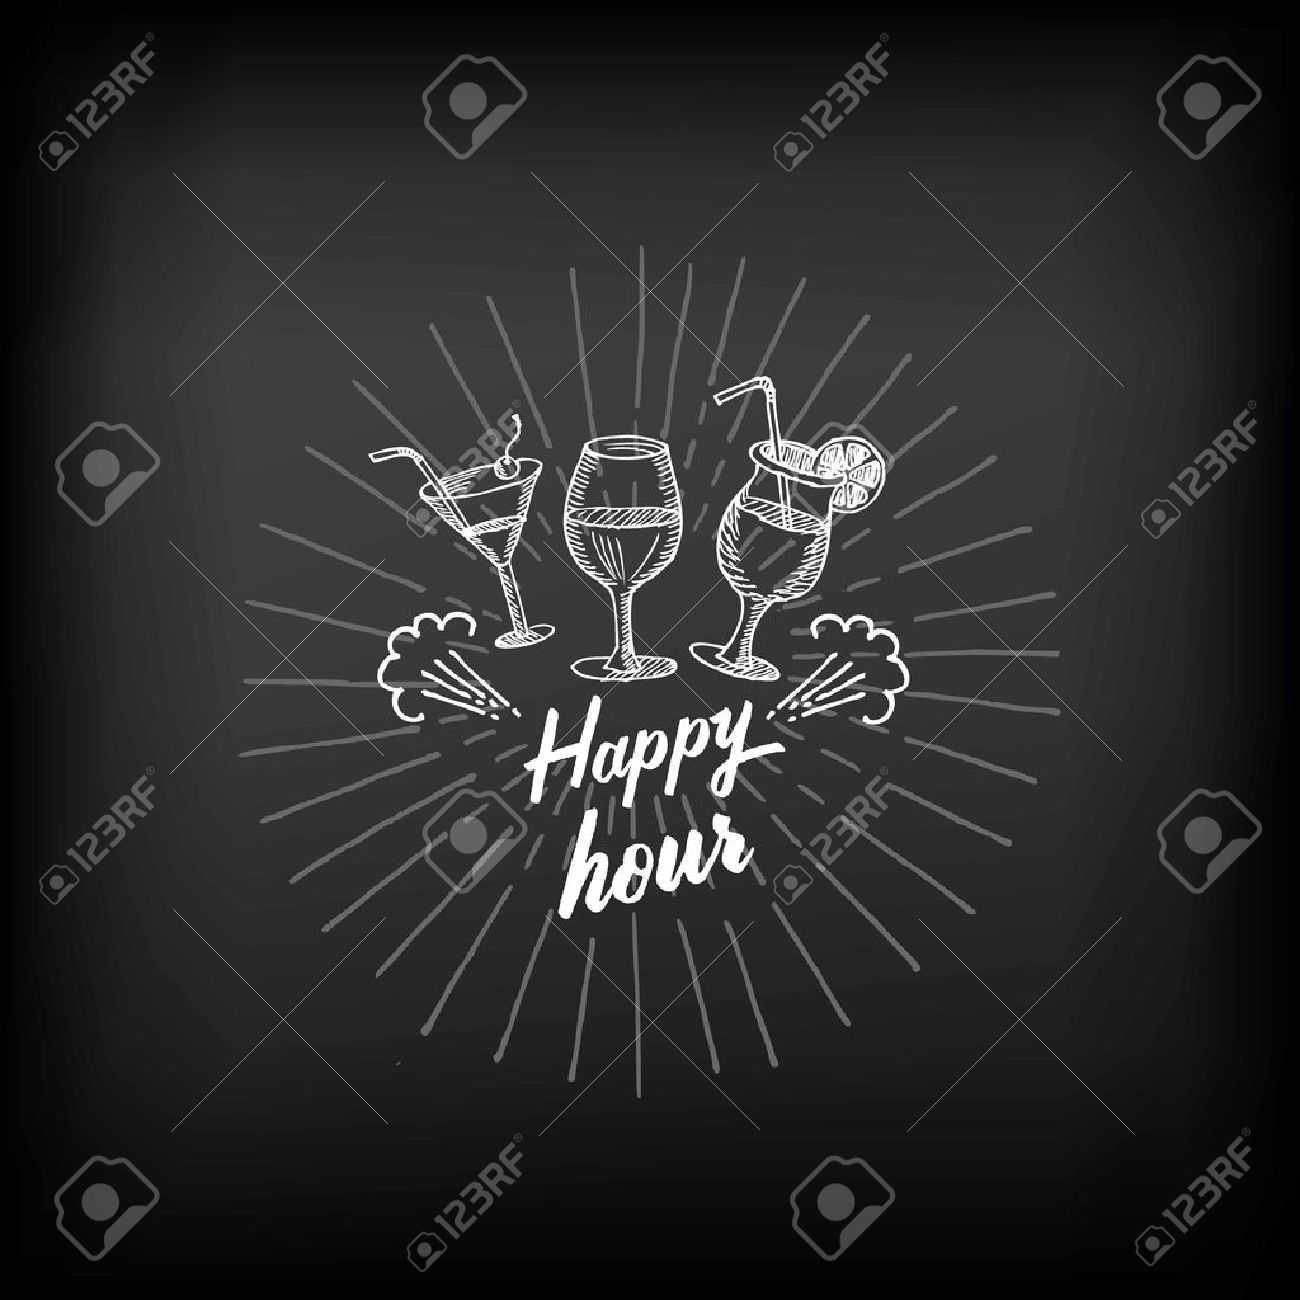 happy hour wine images stock pictures royalty happy hour happy hour wine happy hour party invitation cocktail chalkboard banner